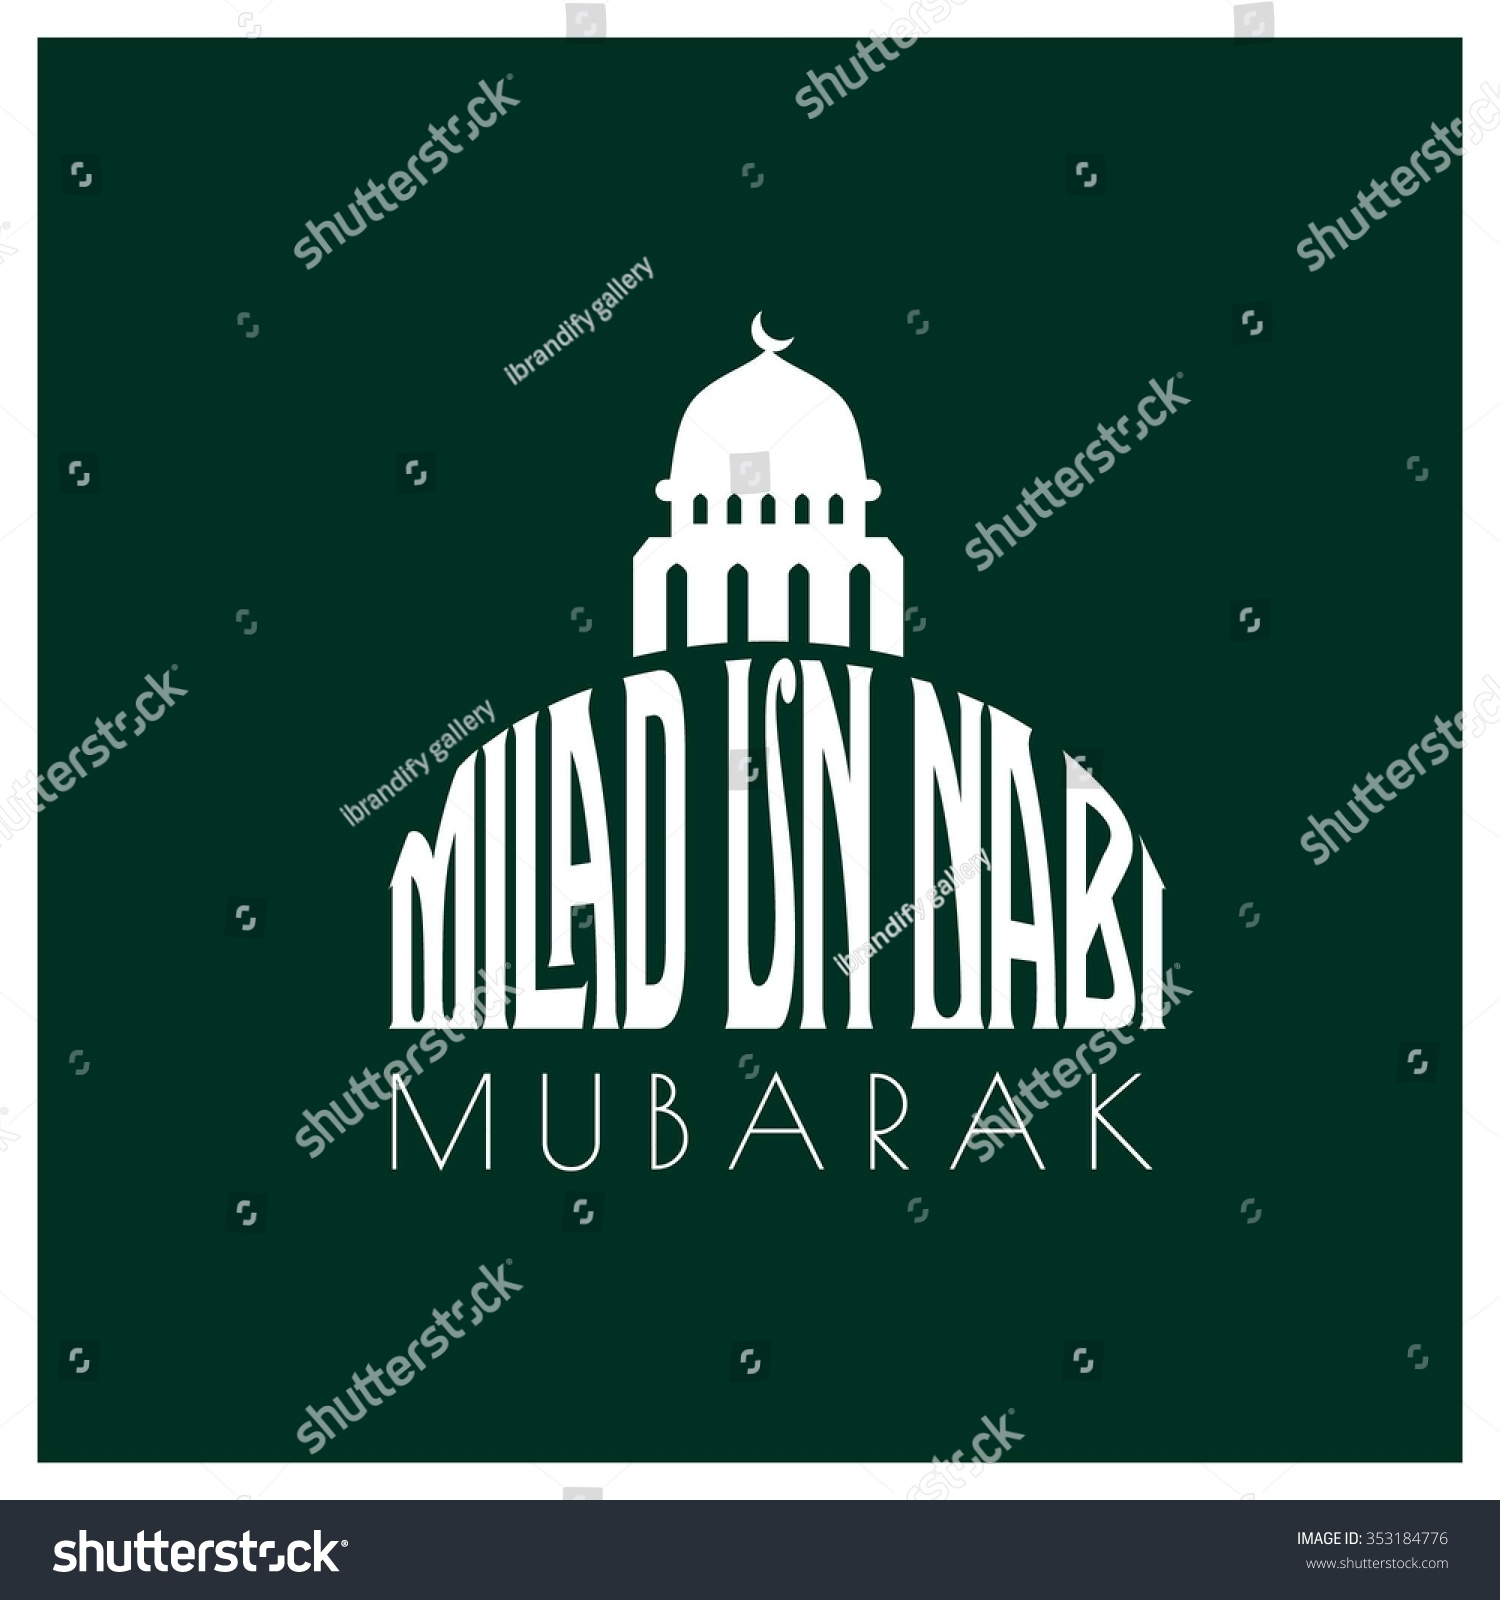 English calligraphy text eid milad un stock vector 353184776 english calligraphy of text eid milad un nabi for muslim community festival milad islamic m4hsunfo